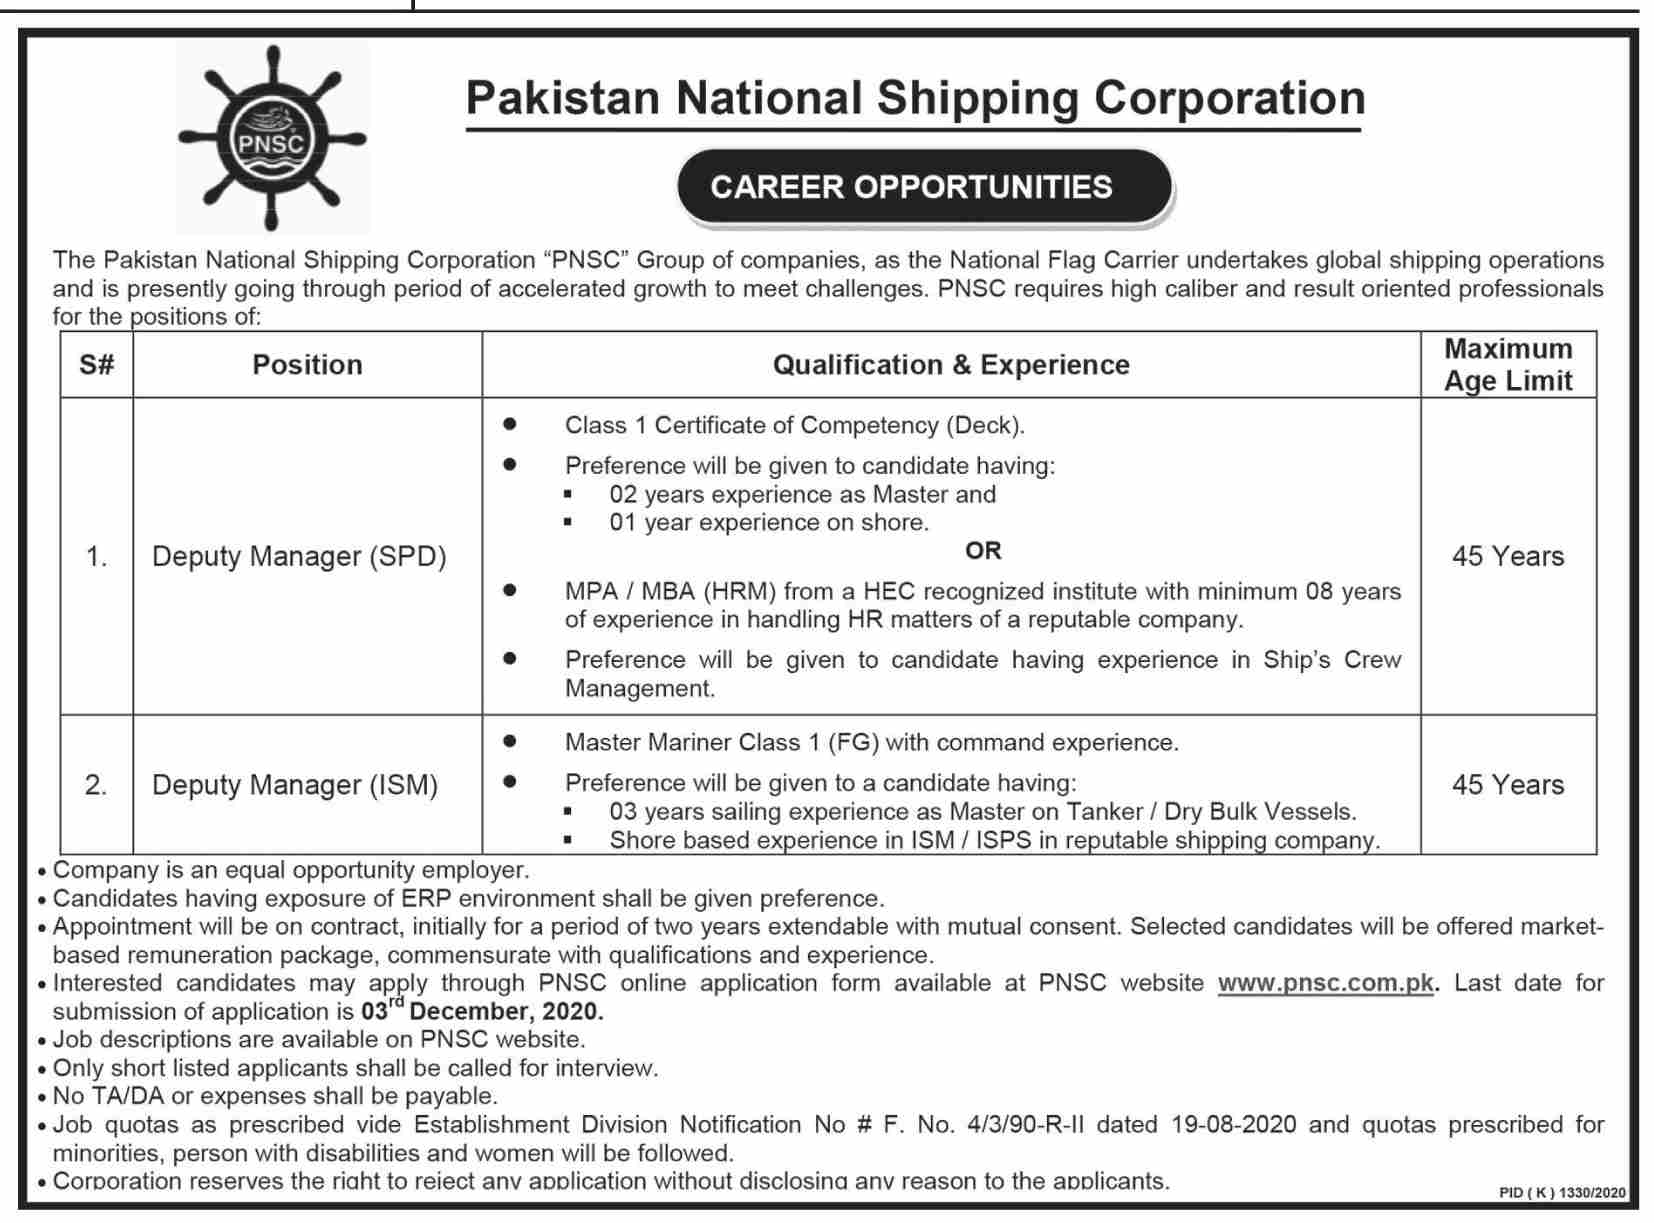 Pakistan National Shipping Corporation PNSC Jobs November 2020